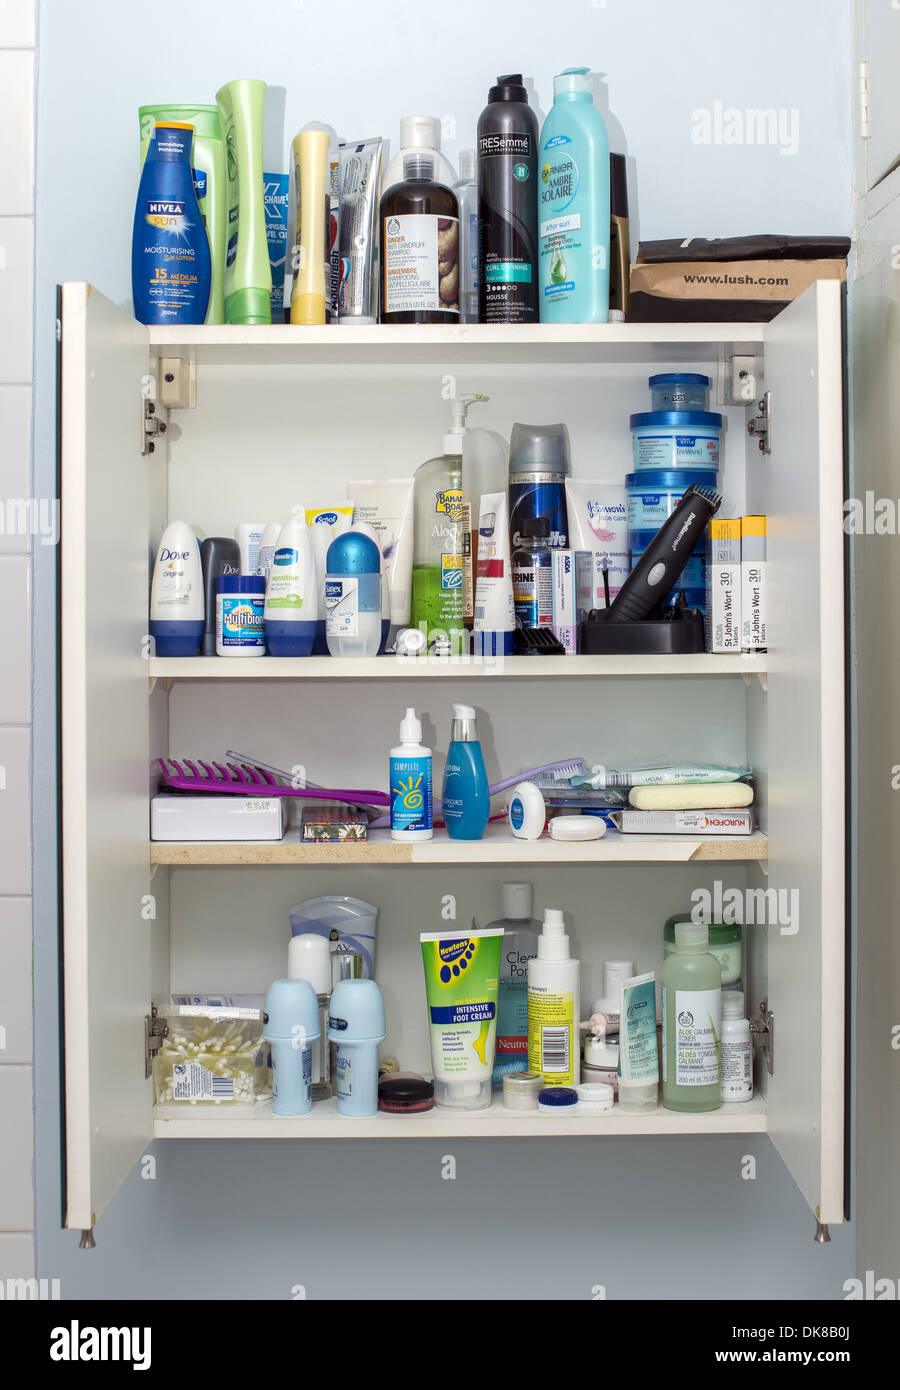 Bathroom cabinet full of toiletry and healthcare products - Stock Image